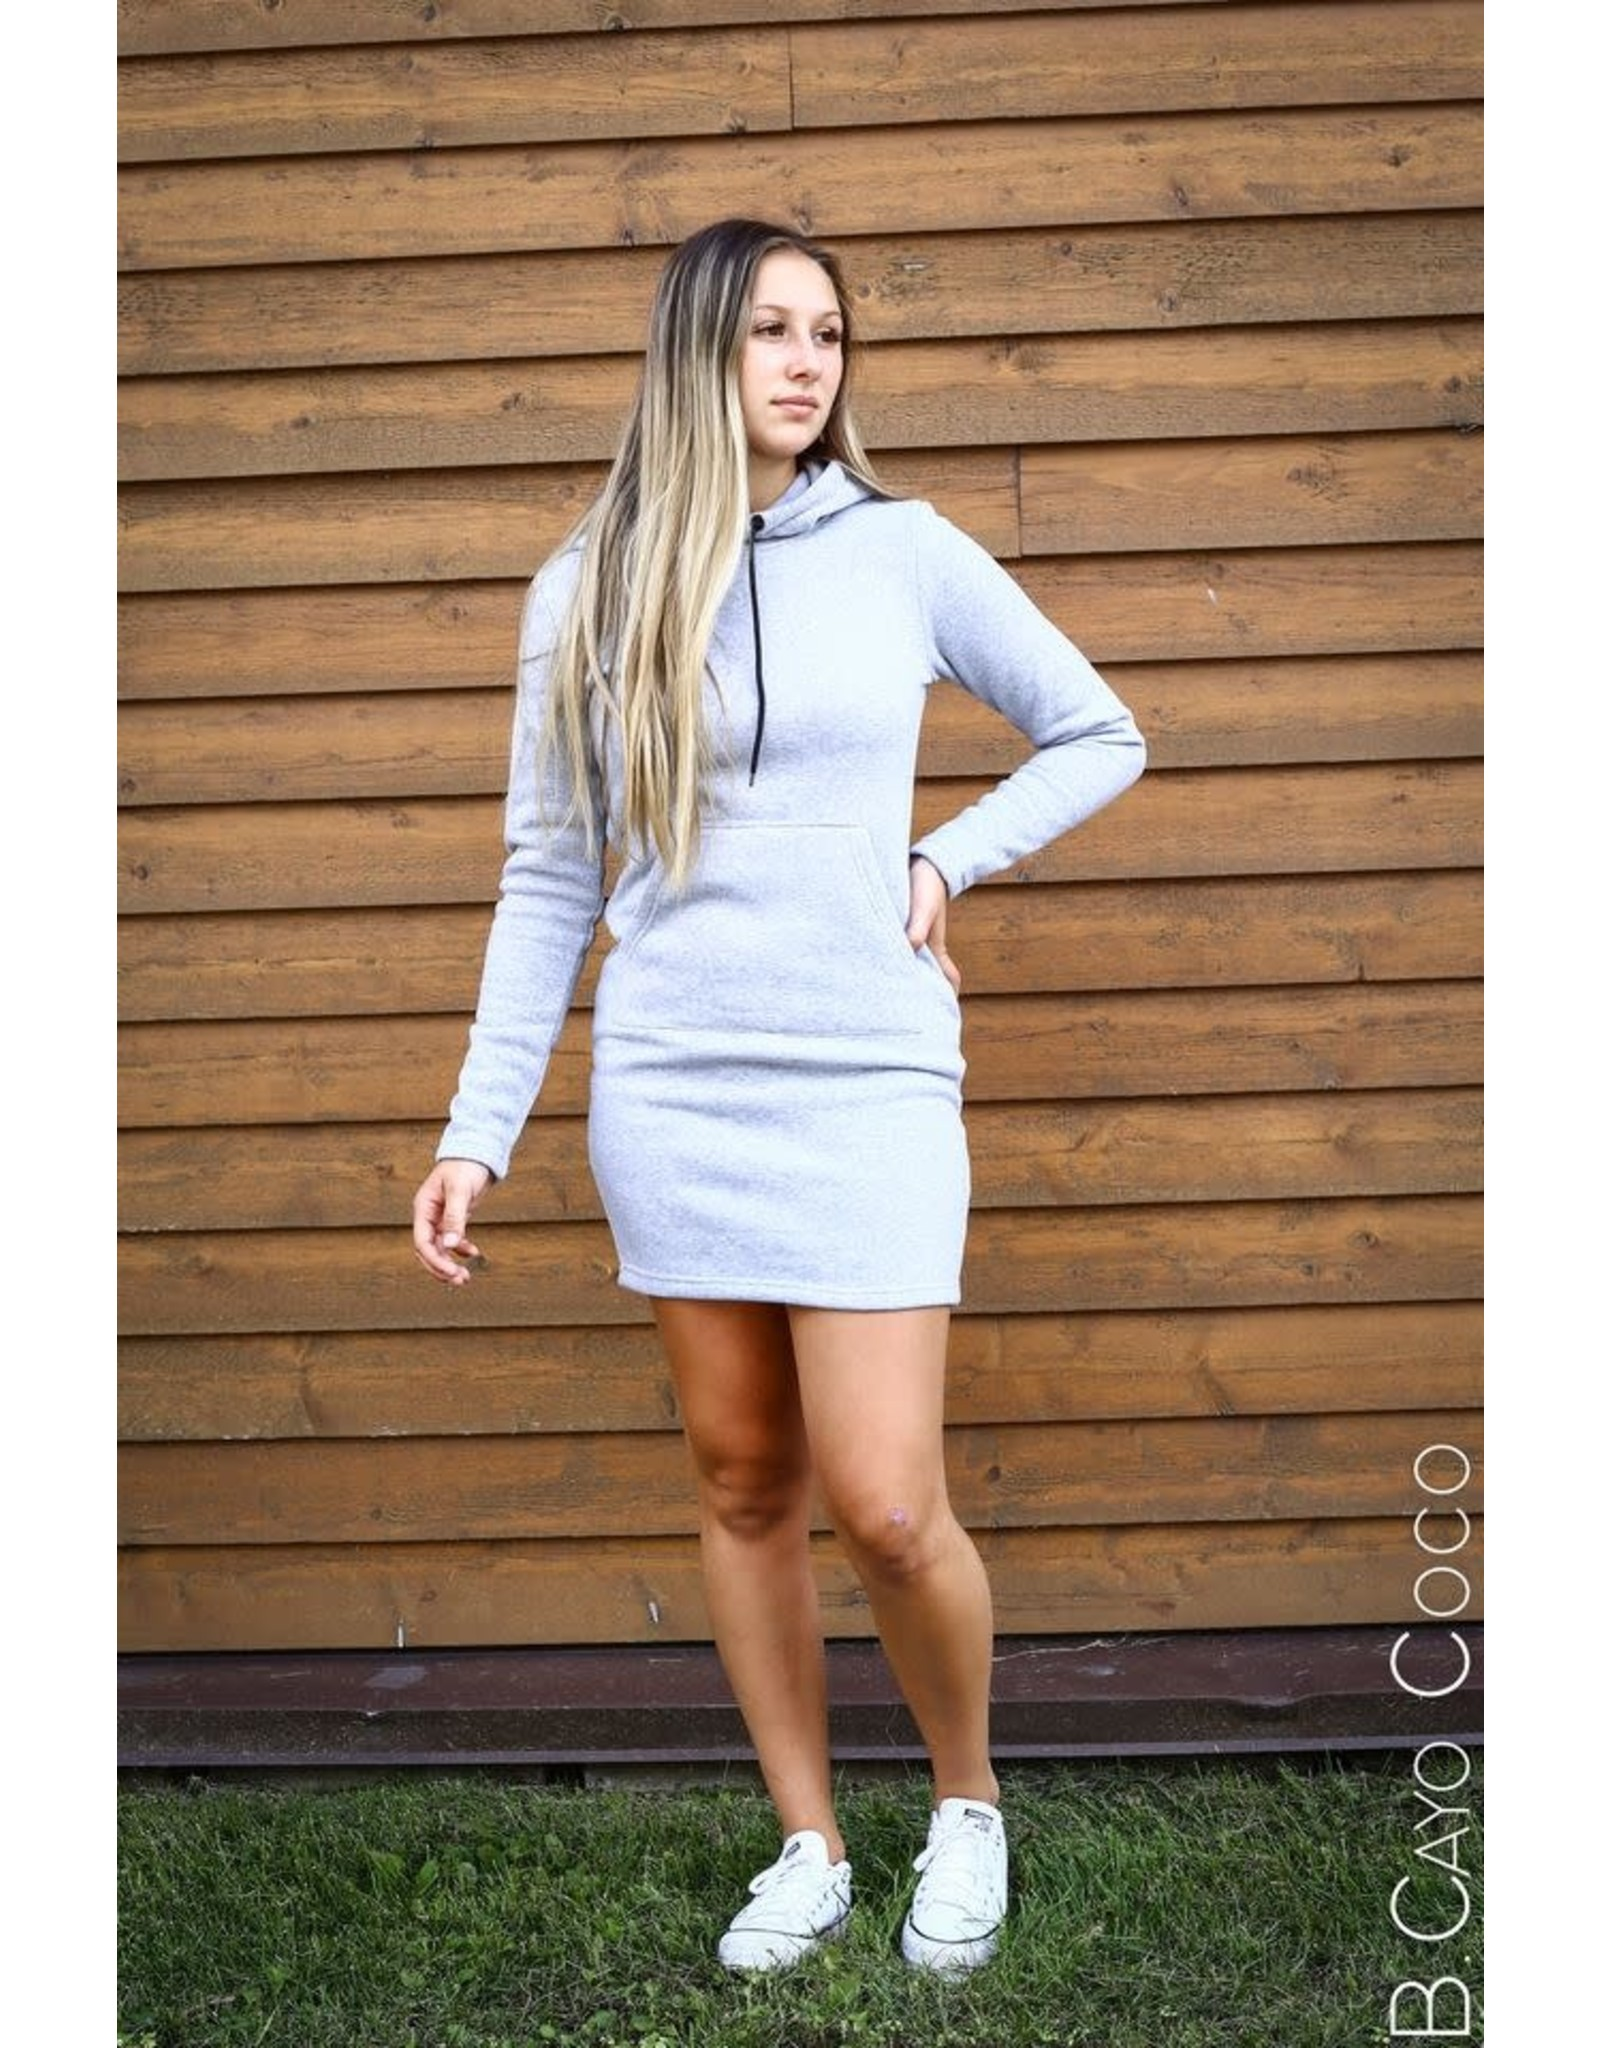 AUDACE-ROBE COTON OUATE-180001